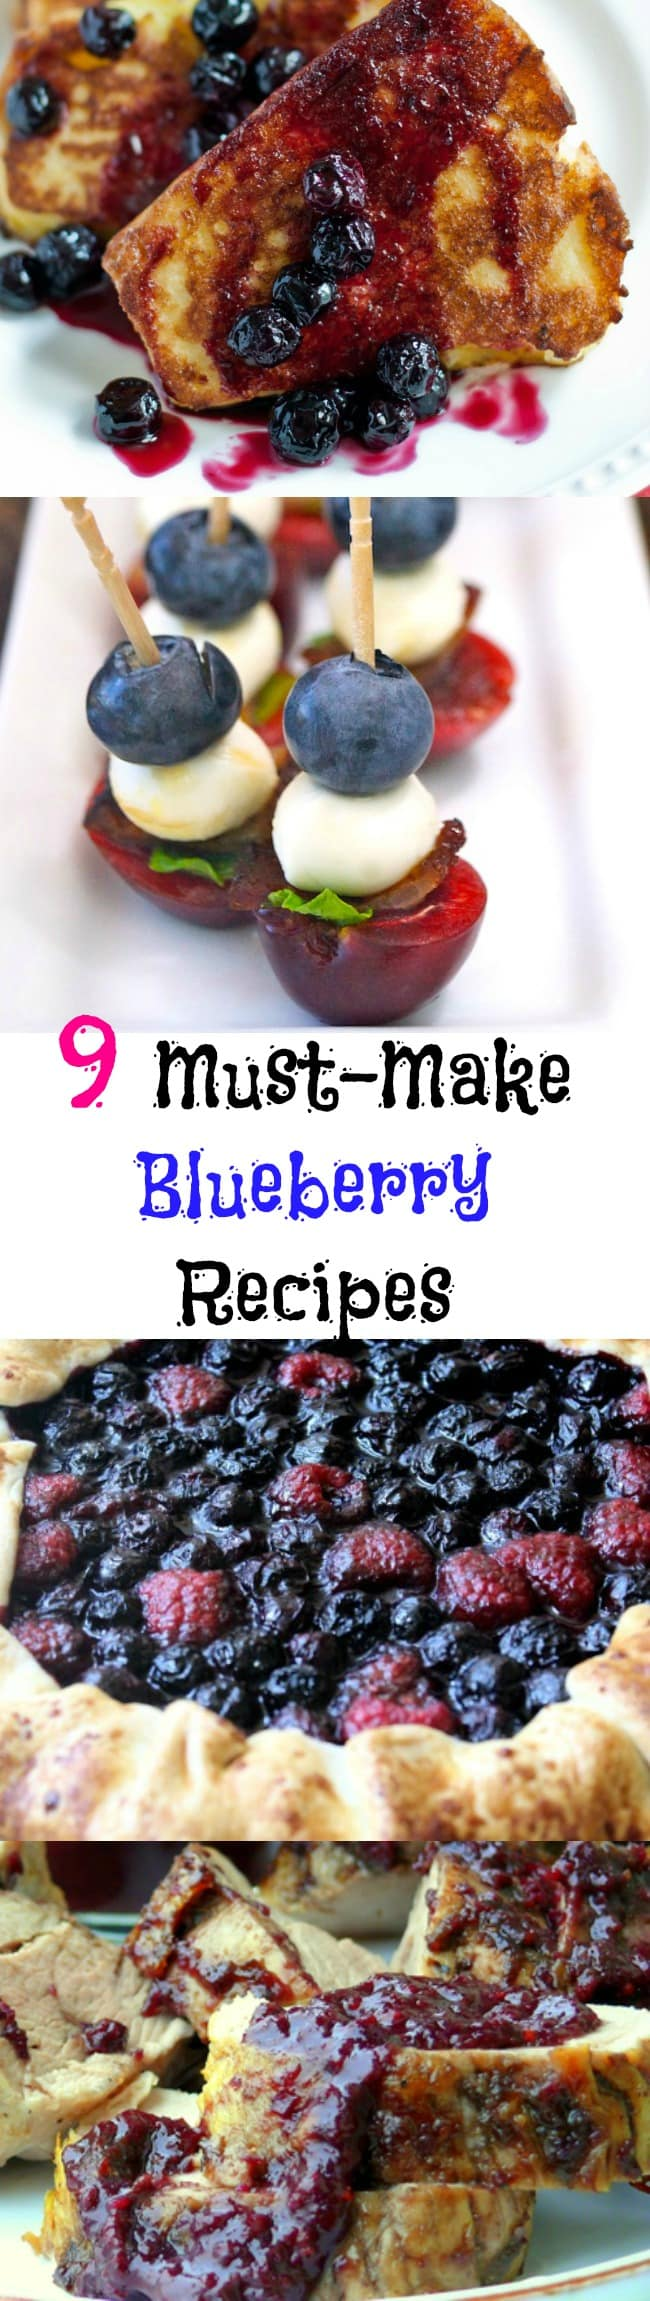 9 Unique Must-Make Blueberry Recipes